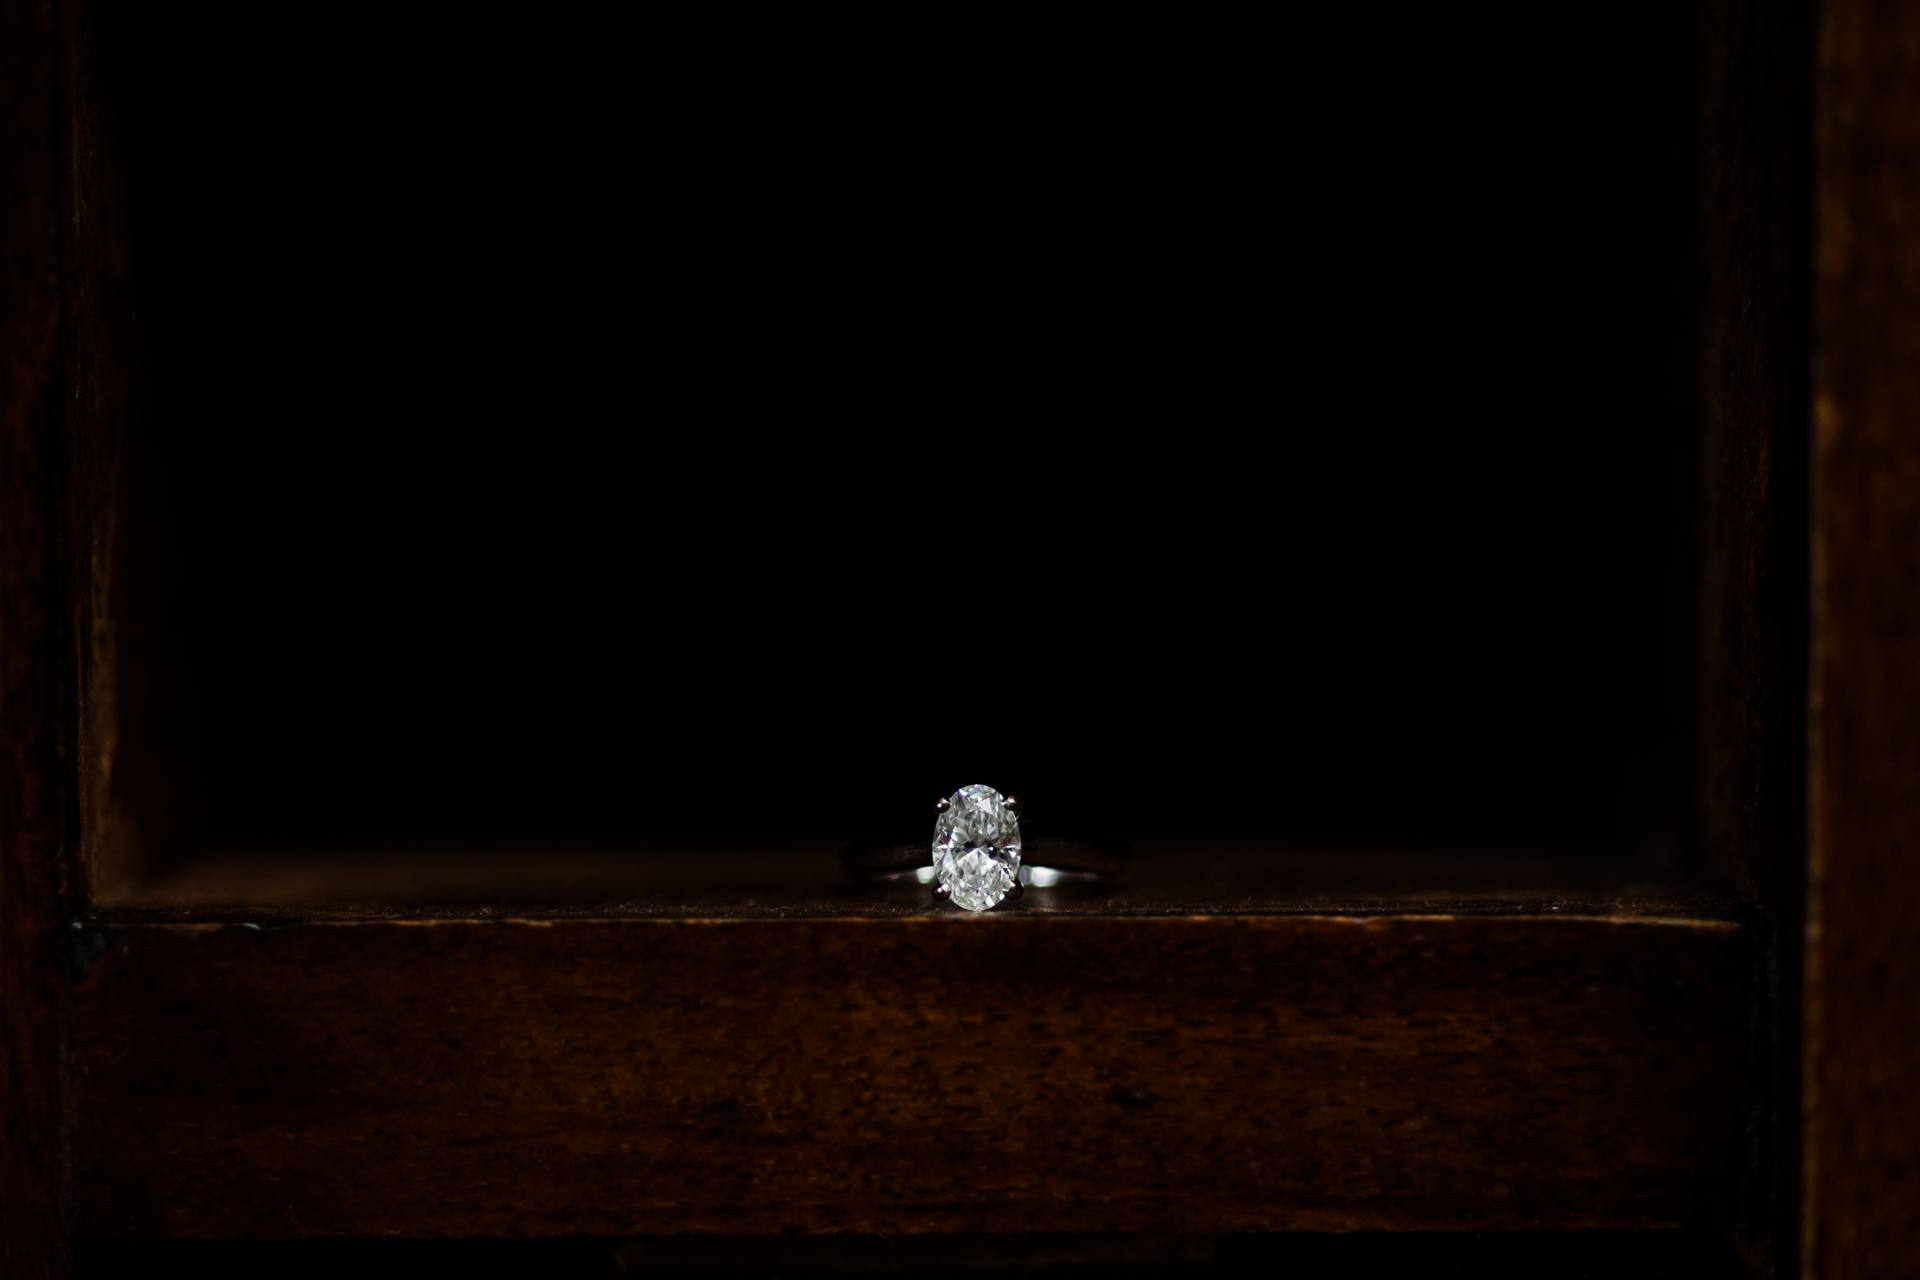 Detail diamond ring shot